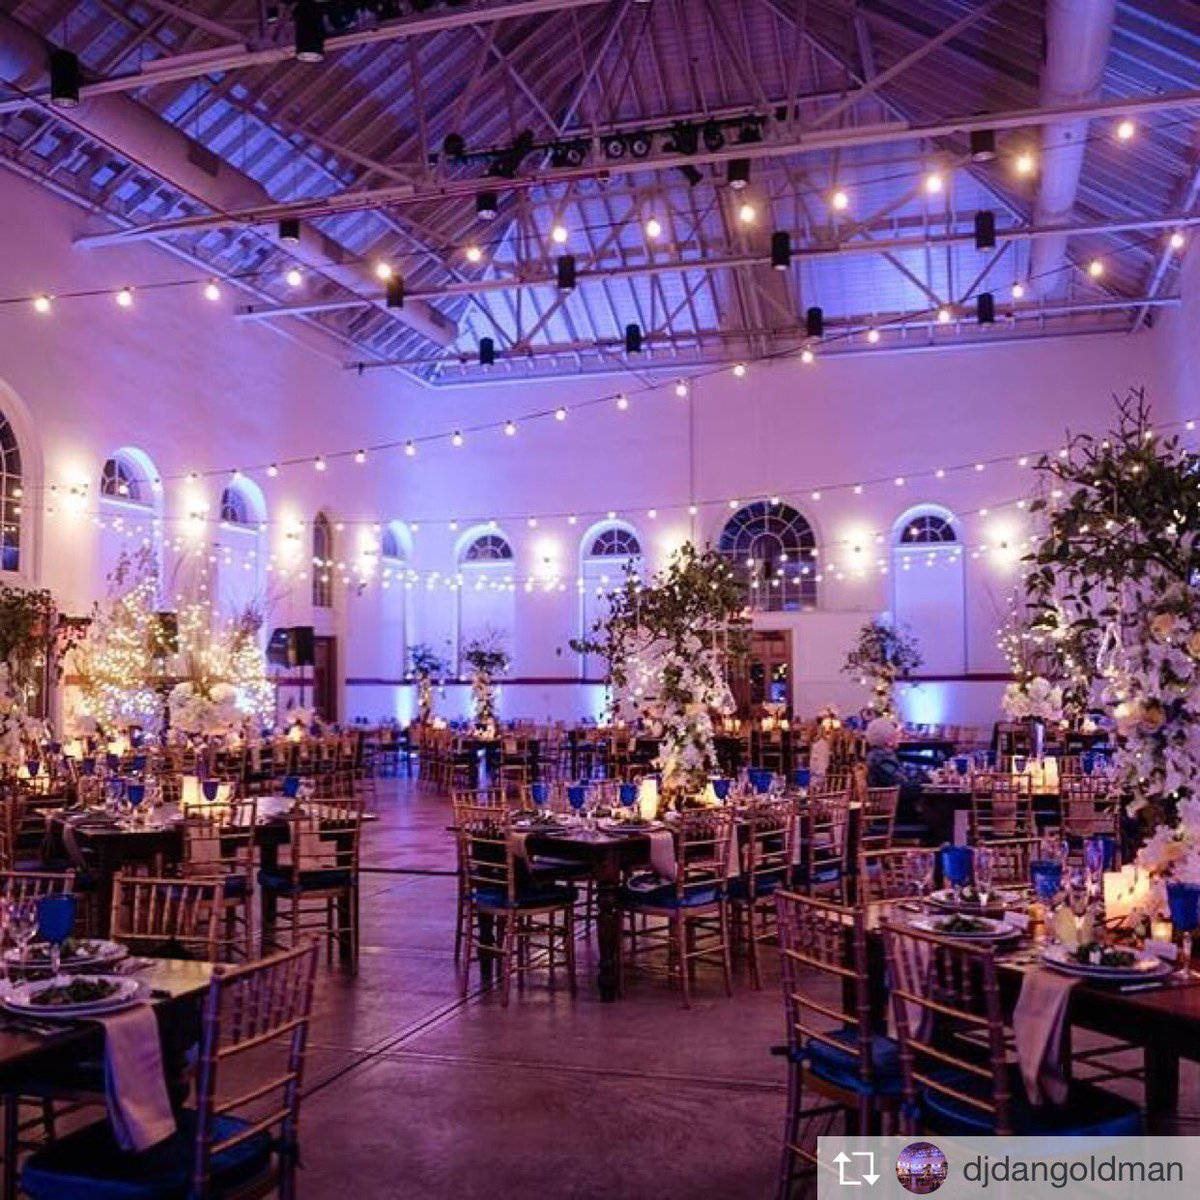 Such A Beautiful Moment Captured In Our Event E North Hall At Eastern Market Photo Taken By Theoberports Djdangoldman Carolineduttonevents